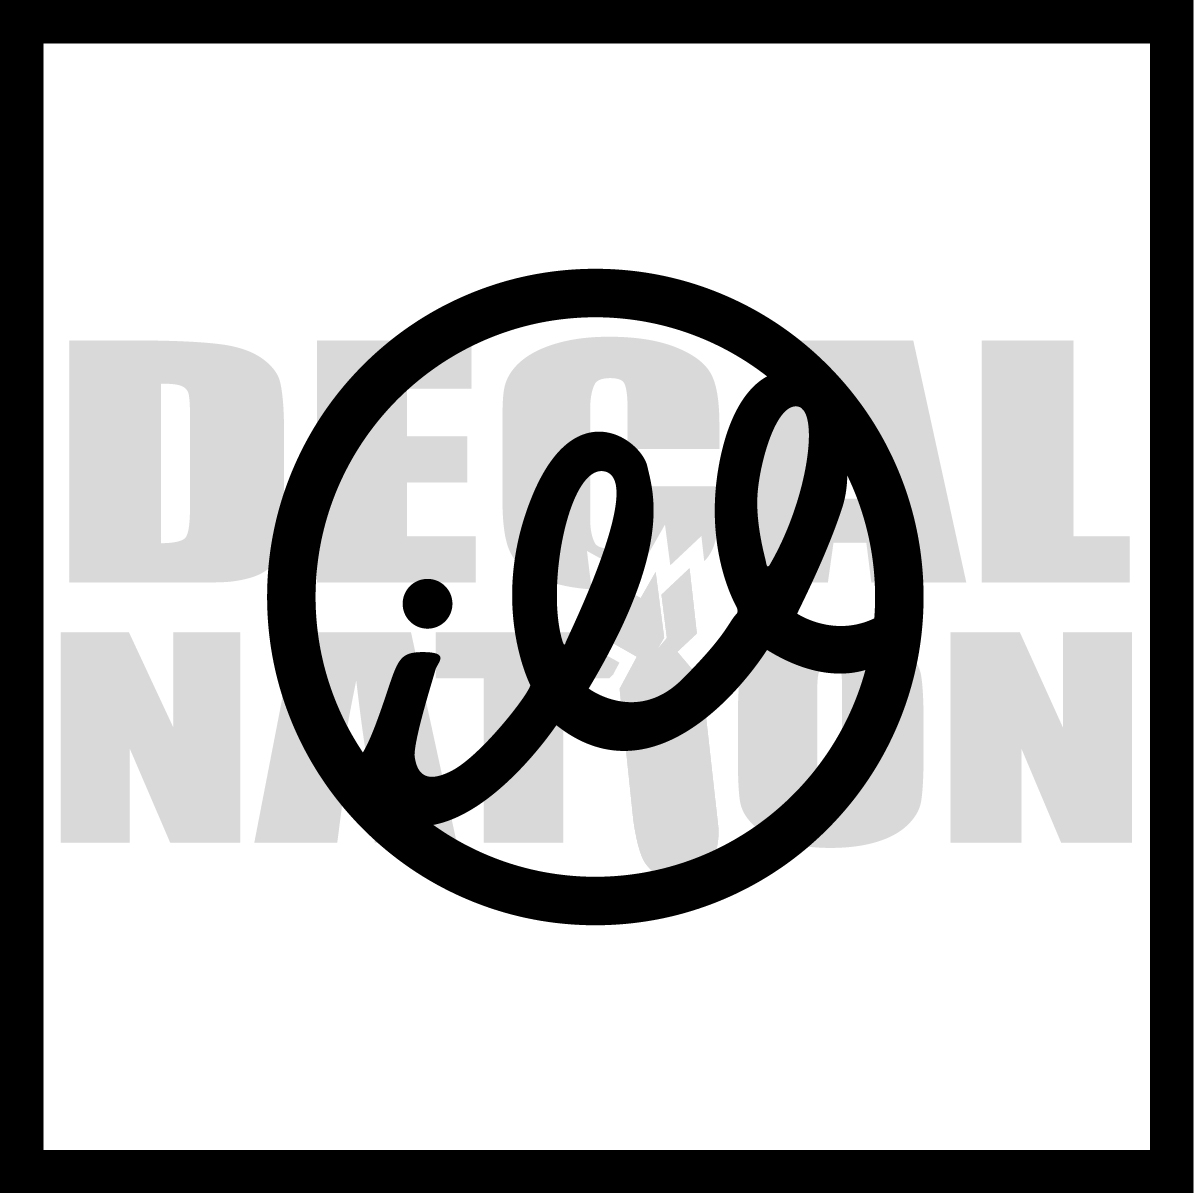 Illest Wallpaper: Illest In A Circle · Decal Nation · Online Store Powered